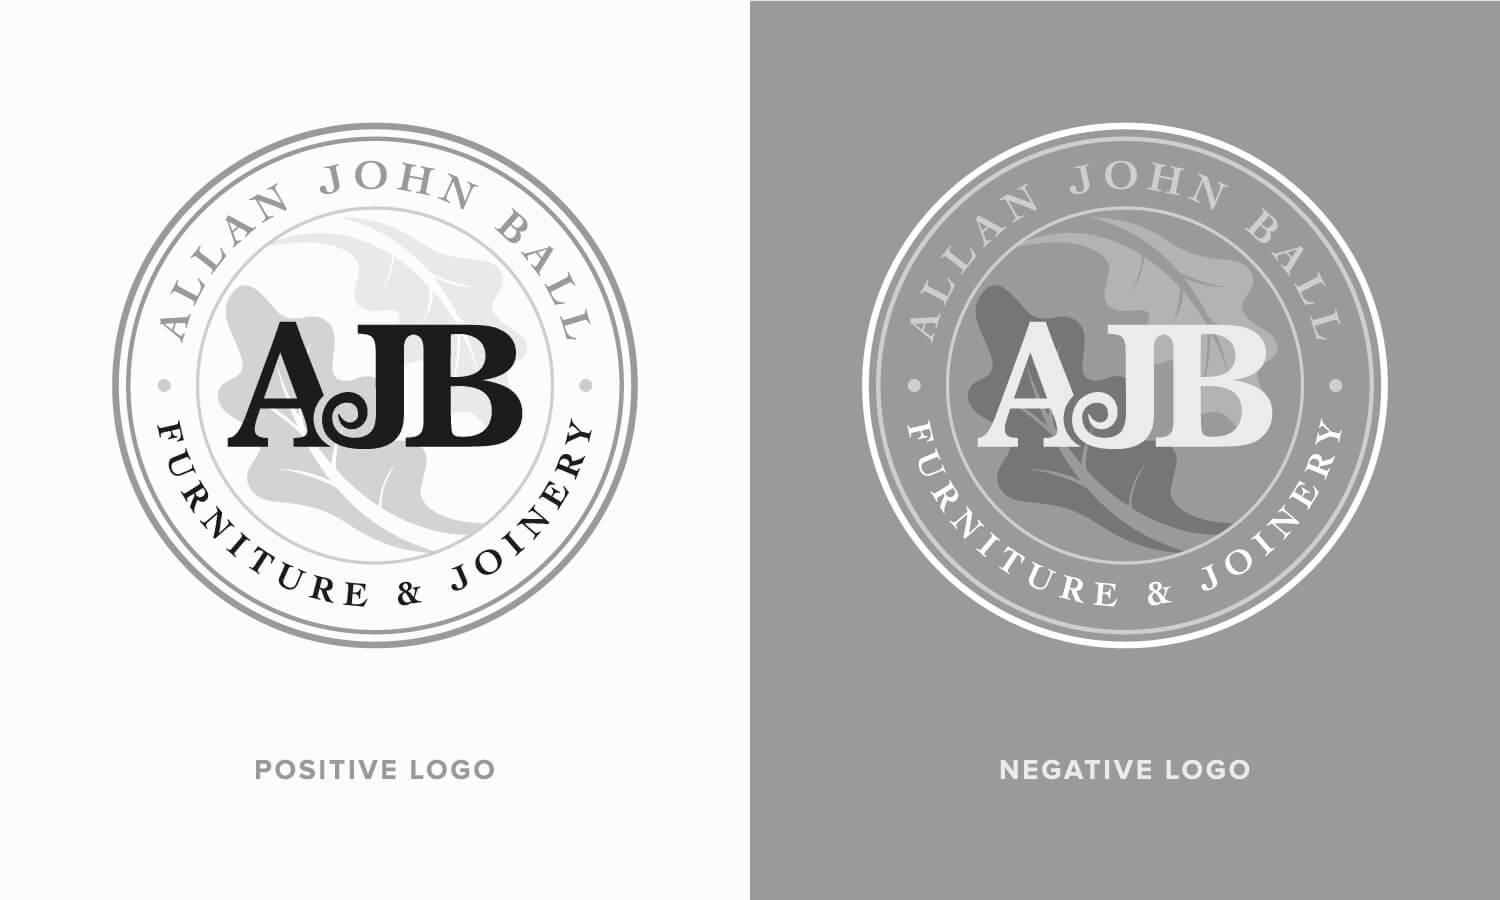 Positive and negative logo versions of the AJB Joinery logo design.